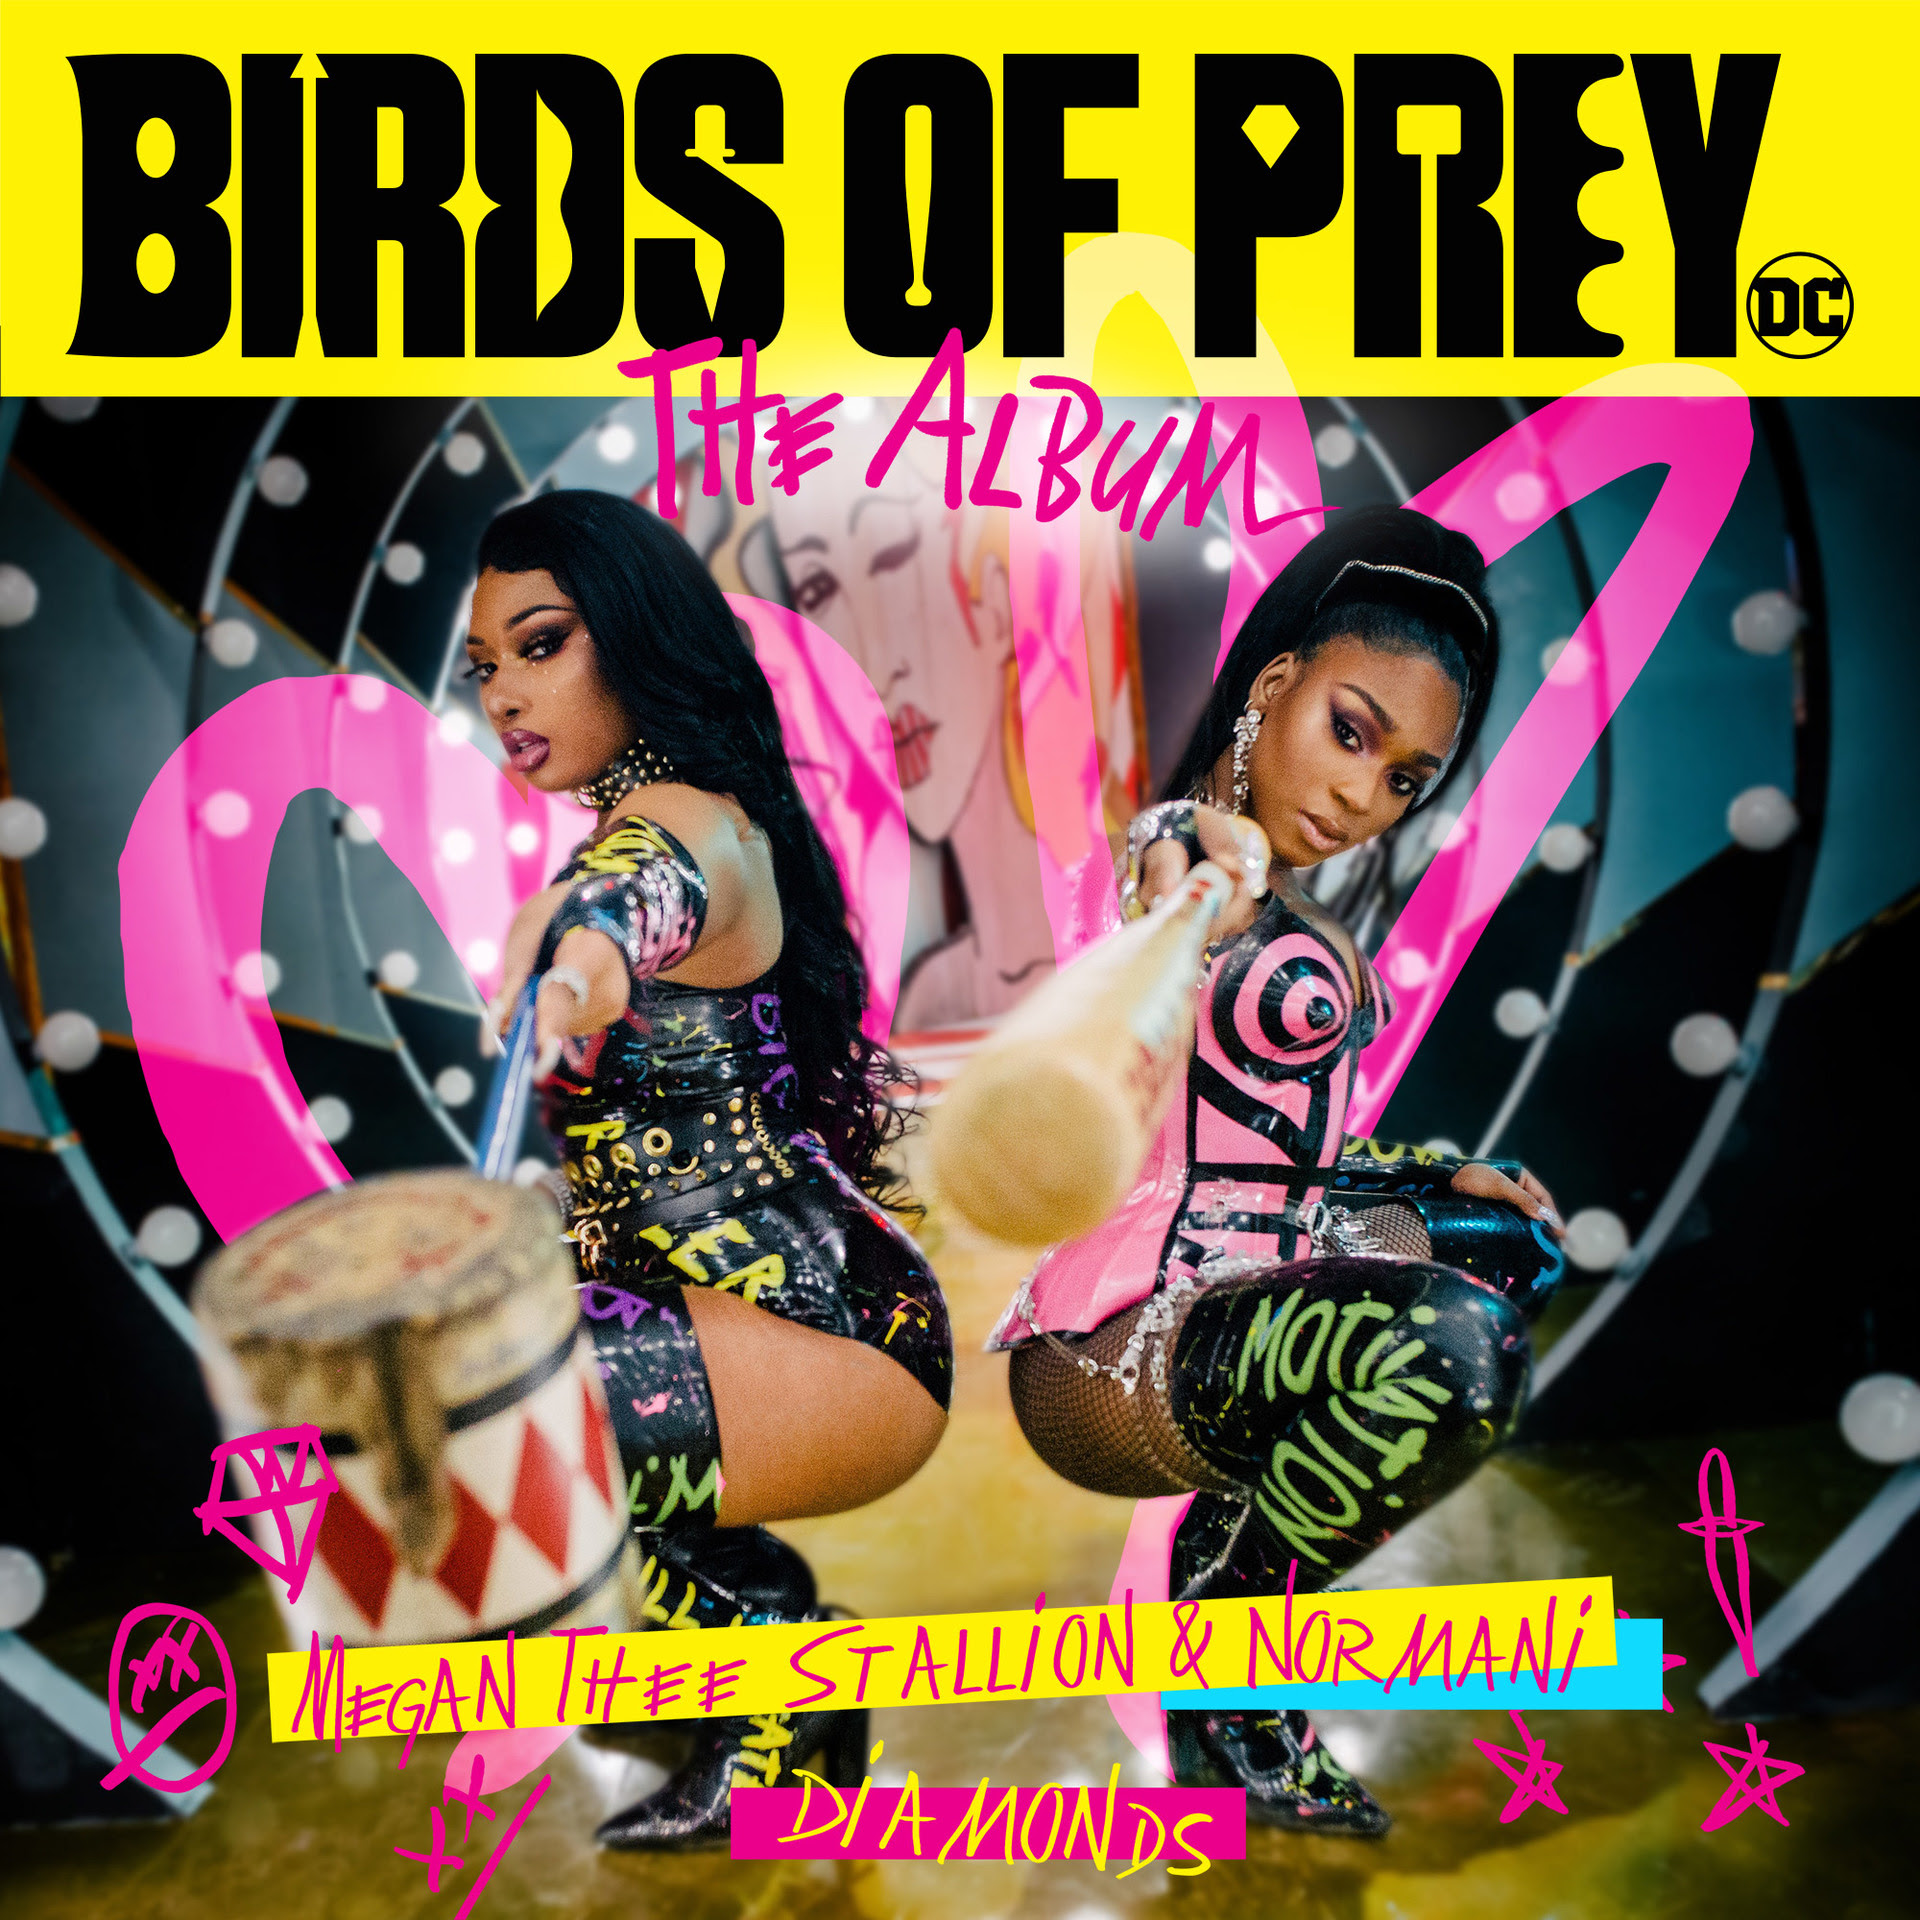 """""""Diamonds,"""" is the collaboration between Megan Thee Stallion and Normani, was recently released as the lead-single from the soundtrack Birds of Prey"""